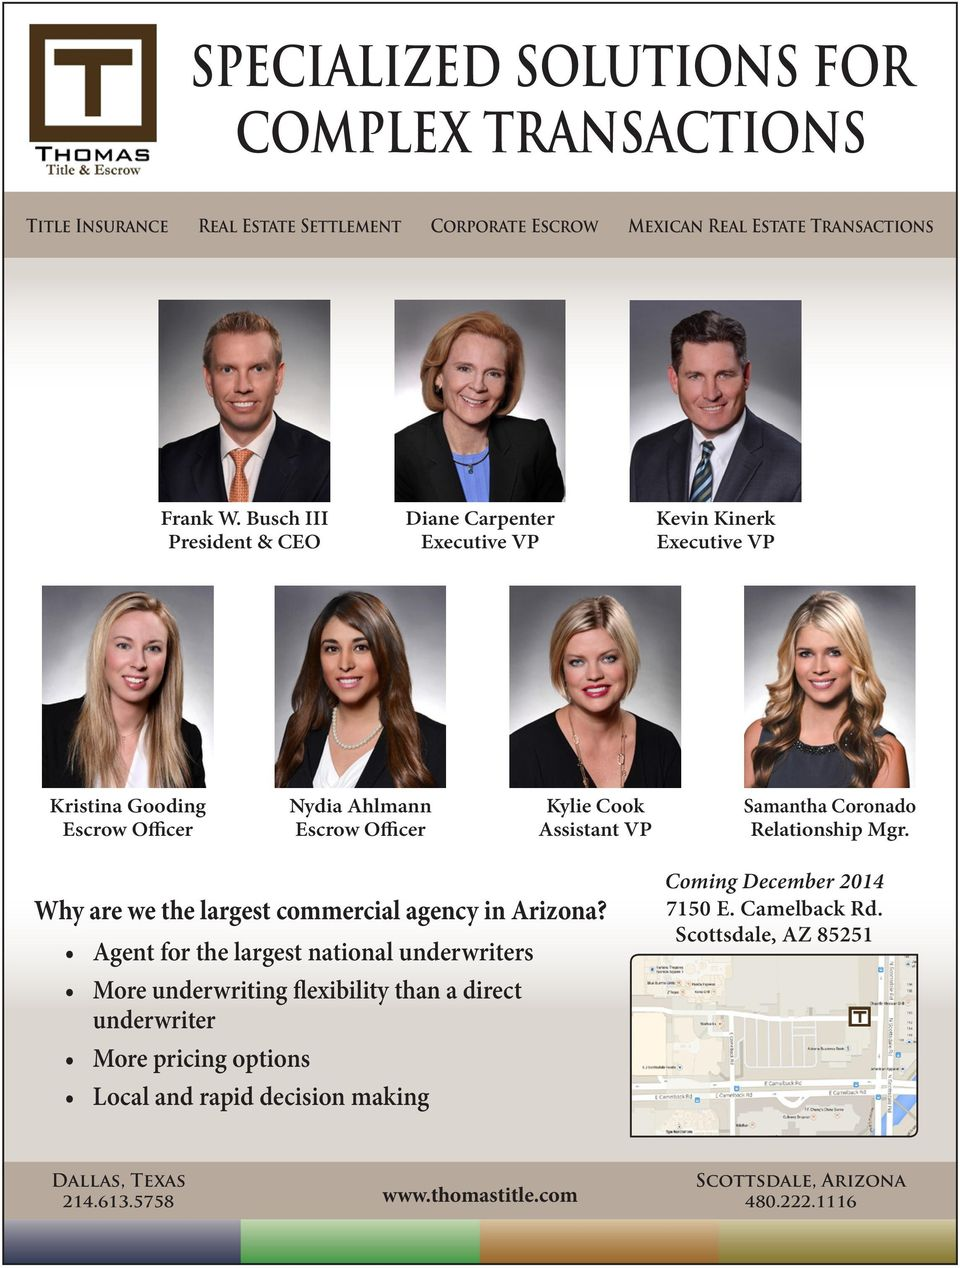 Samantha Coronado Relationship Mgr. Why are we the largest commercial agency in Arizona?